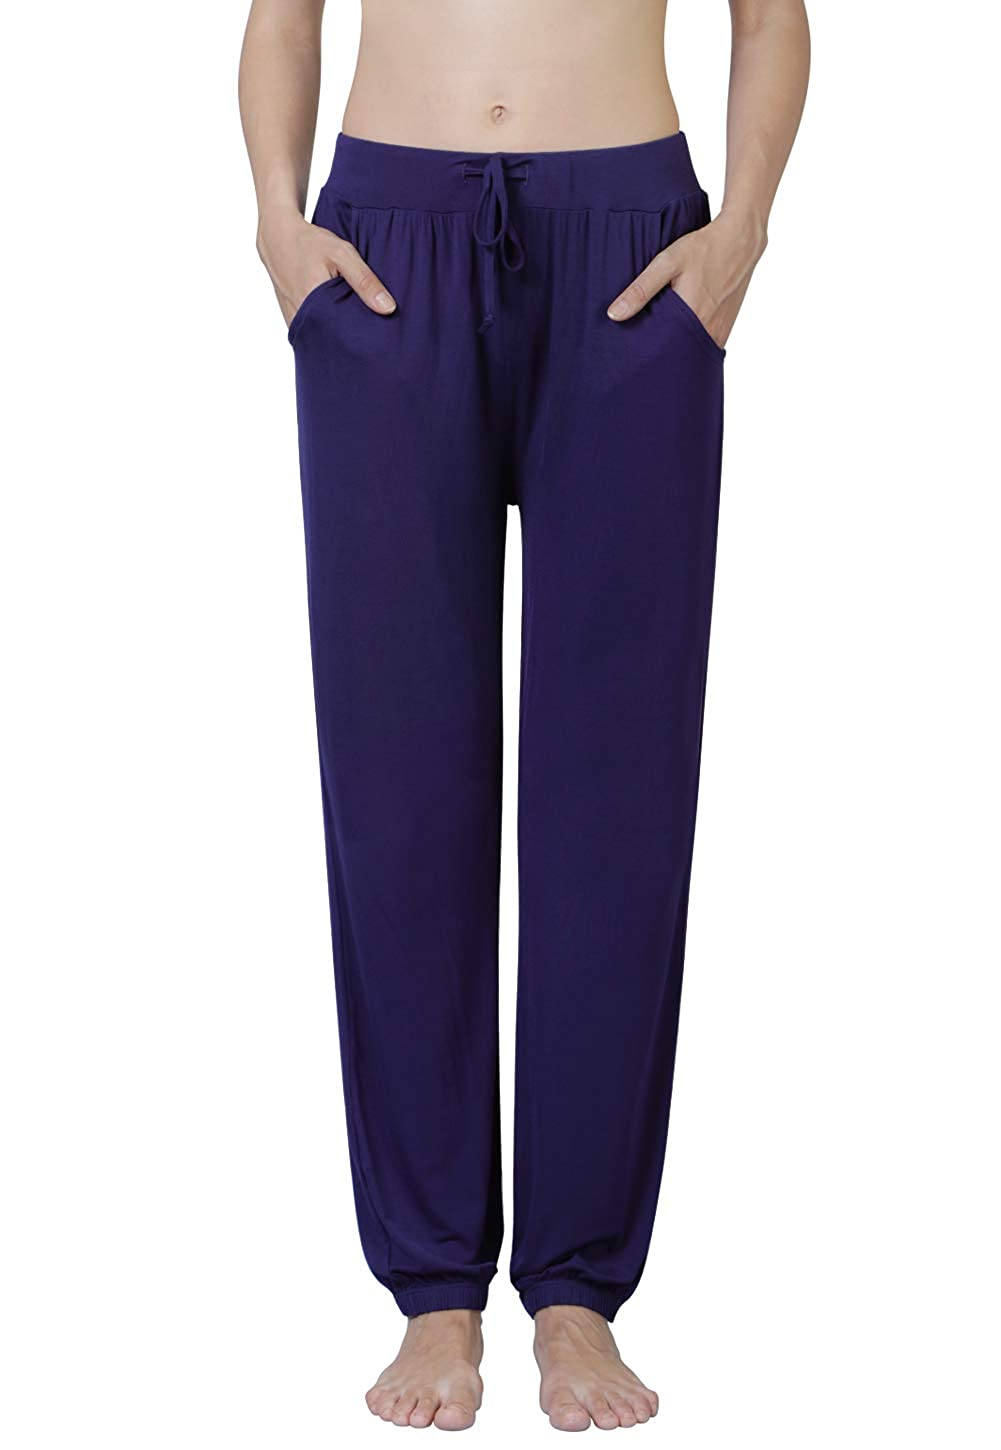 Air Curvey Soft Pajama Pants for Women Lounge Pants